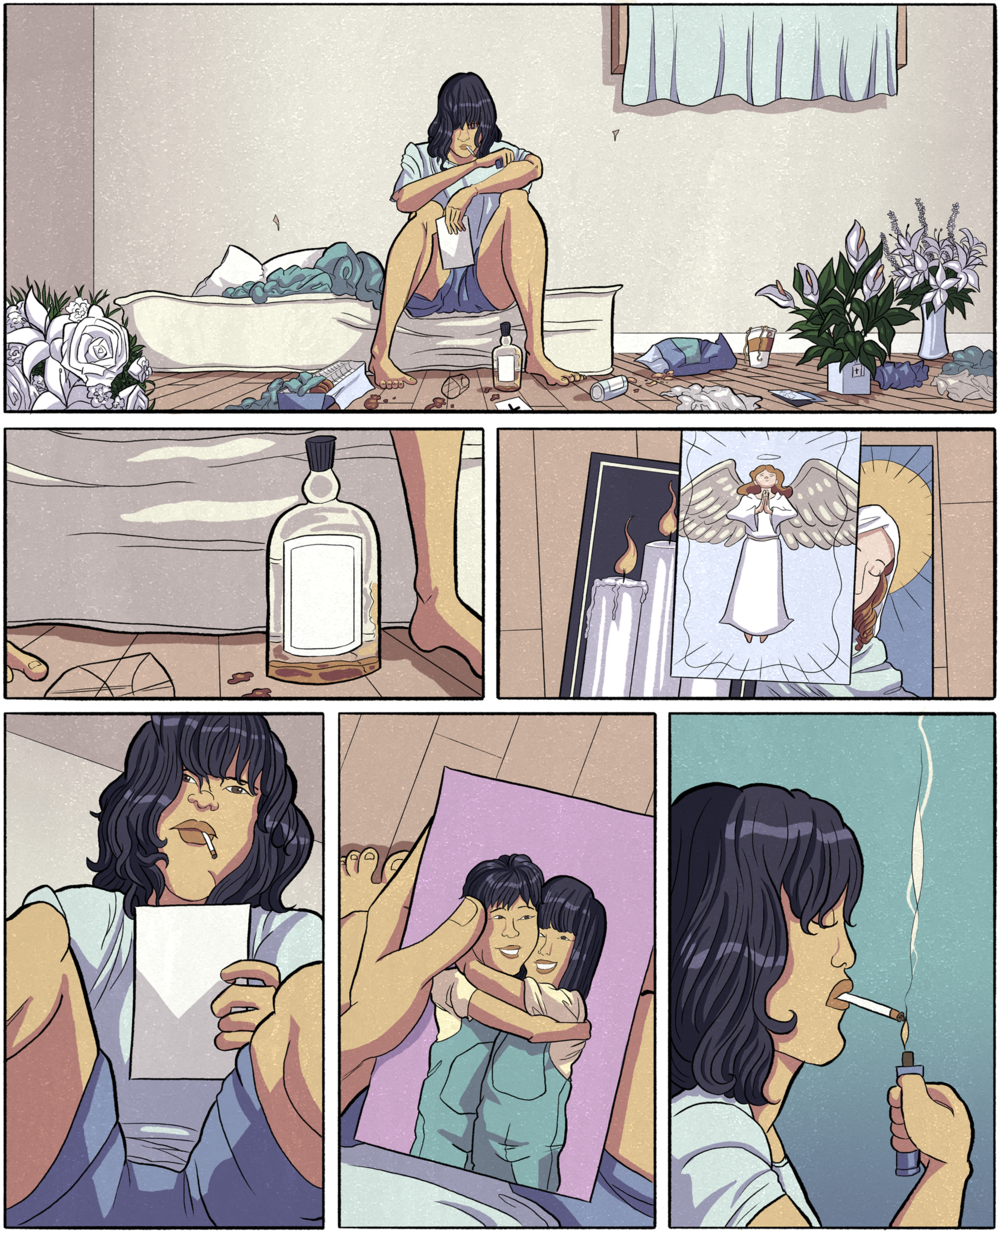 LDonnelly - Page 01C_V2.png